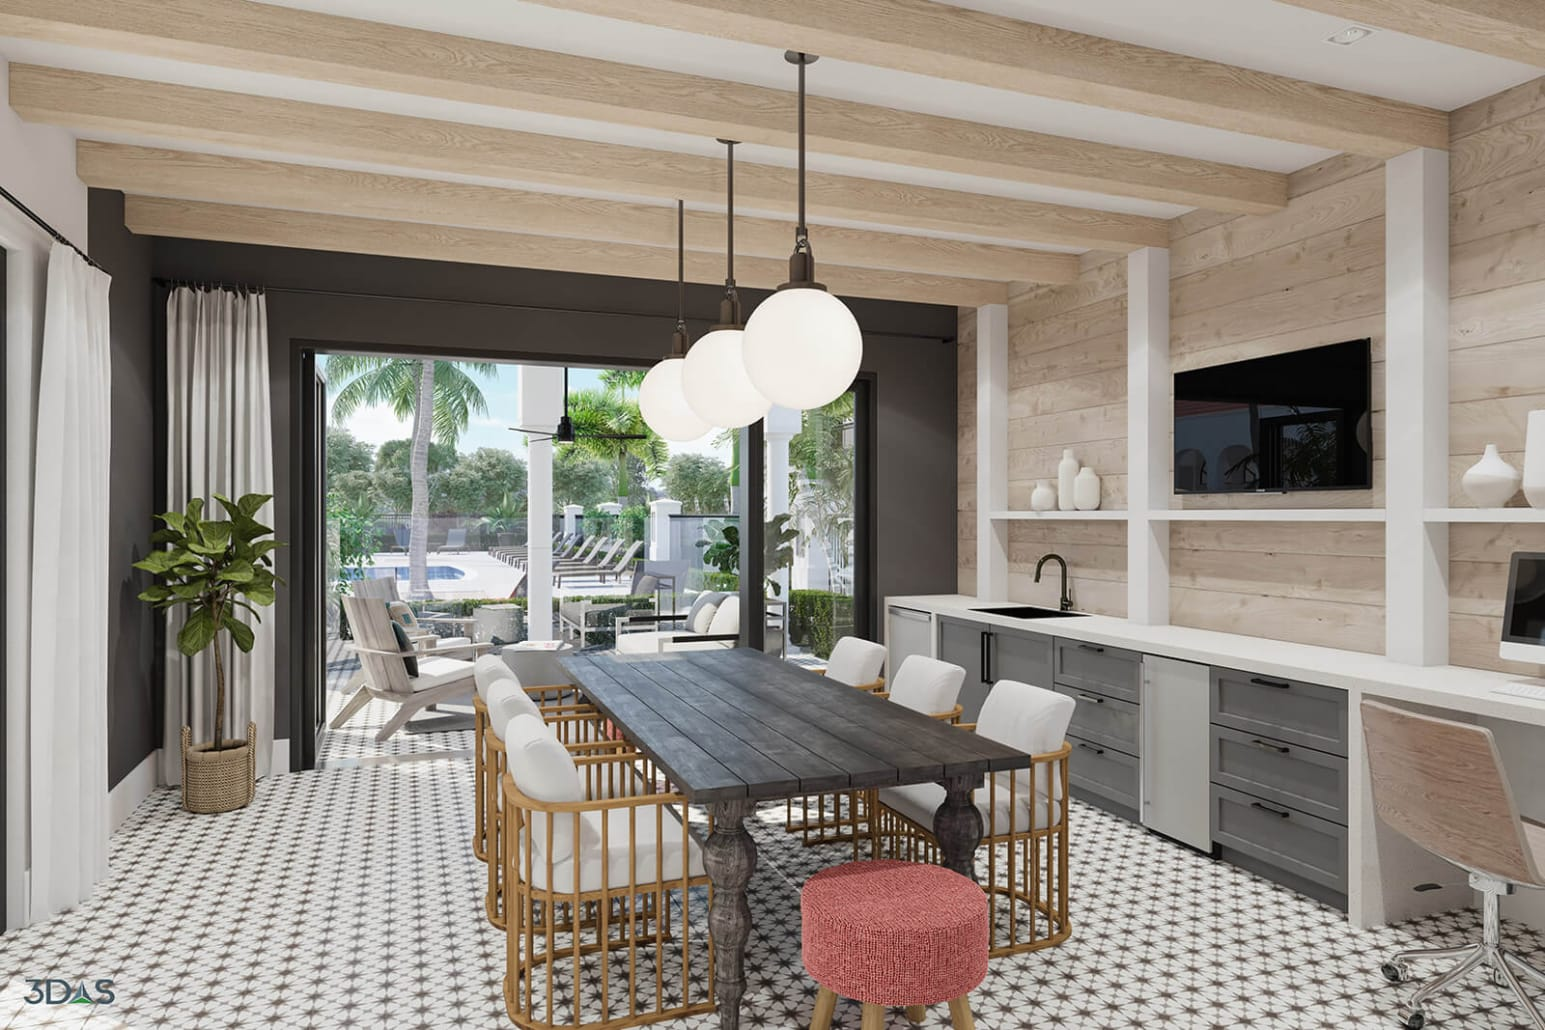 Avalia Cafe 3D Rendering (Overlooking Pool Resort). Avalia is Located in Boca Raton, Florida